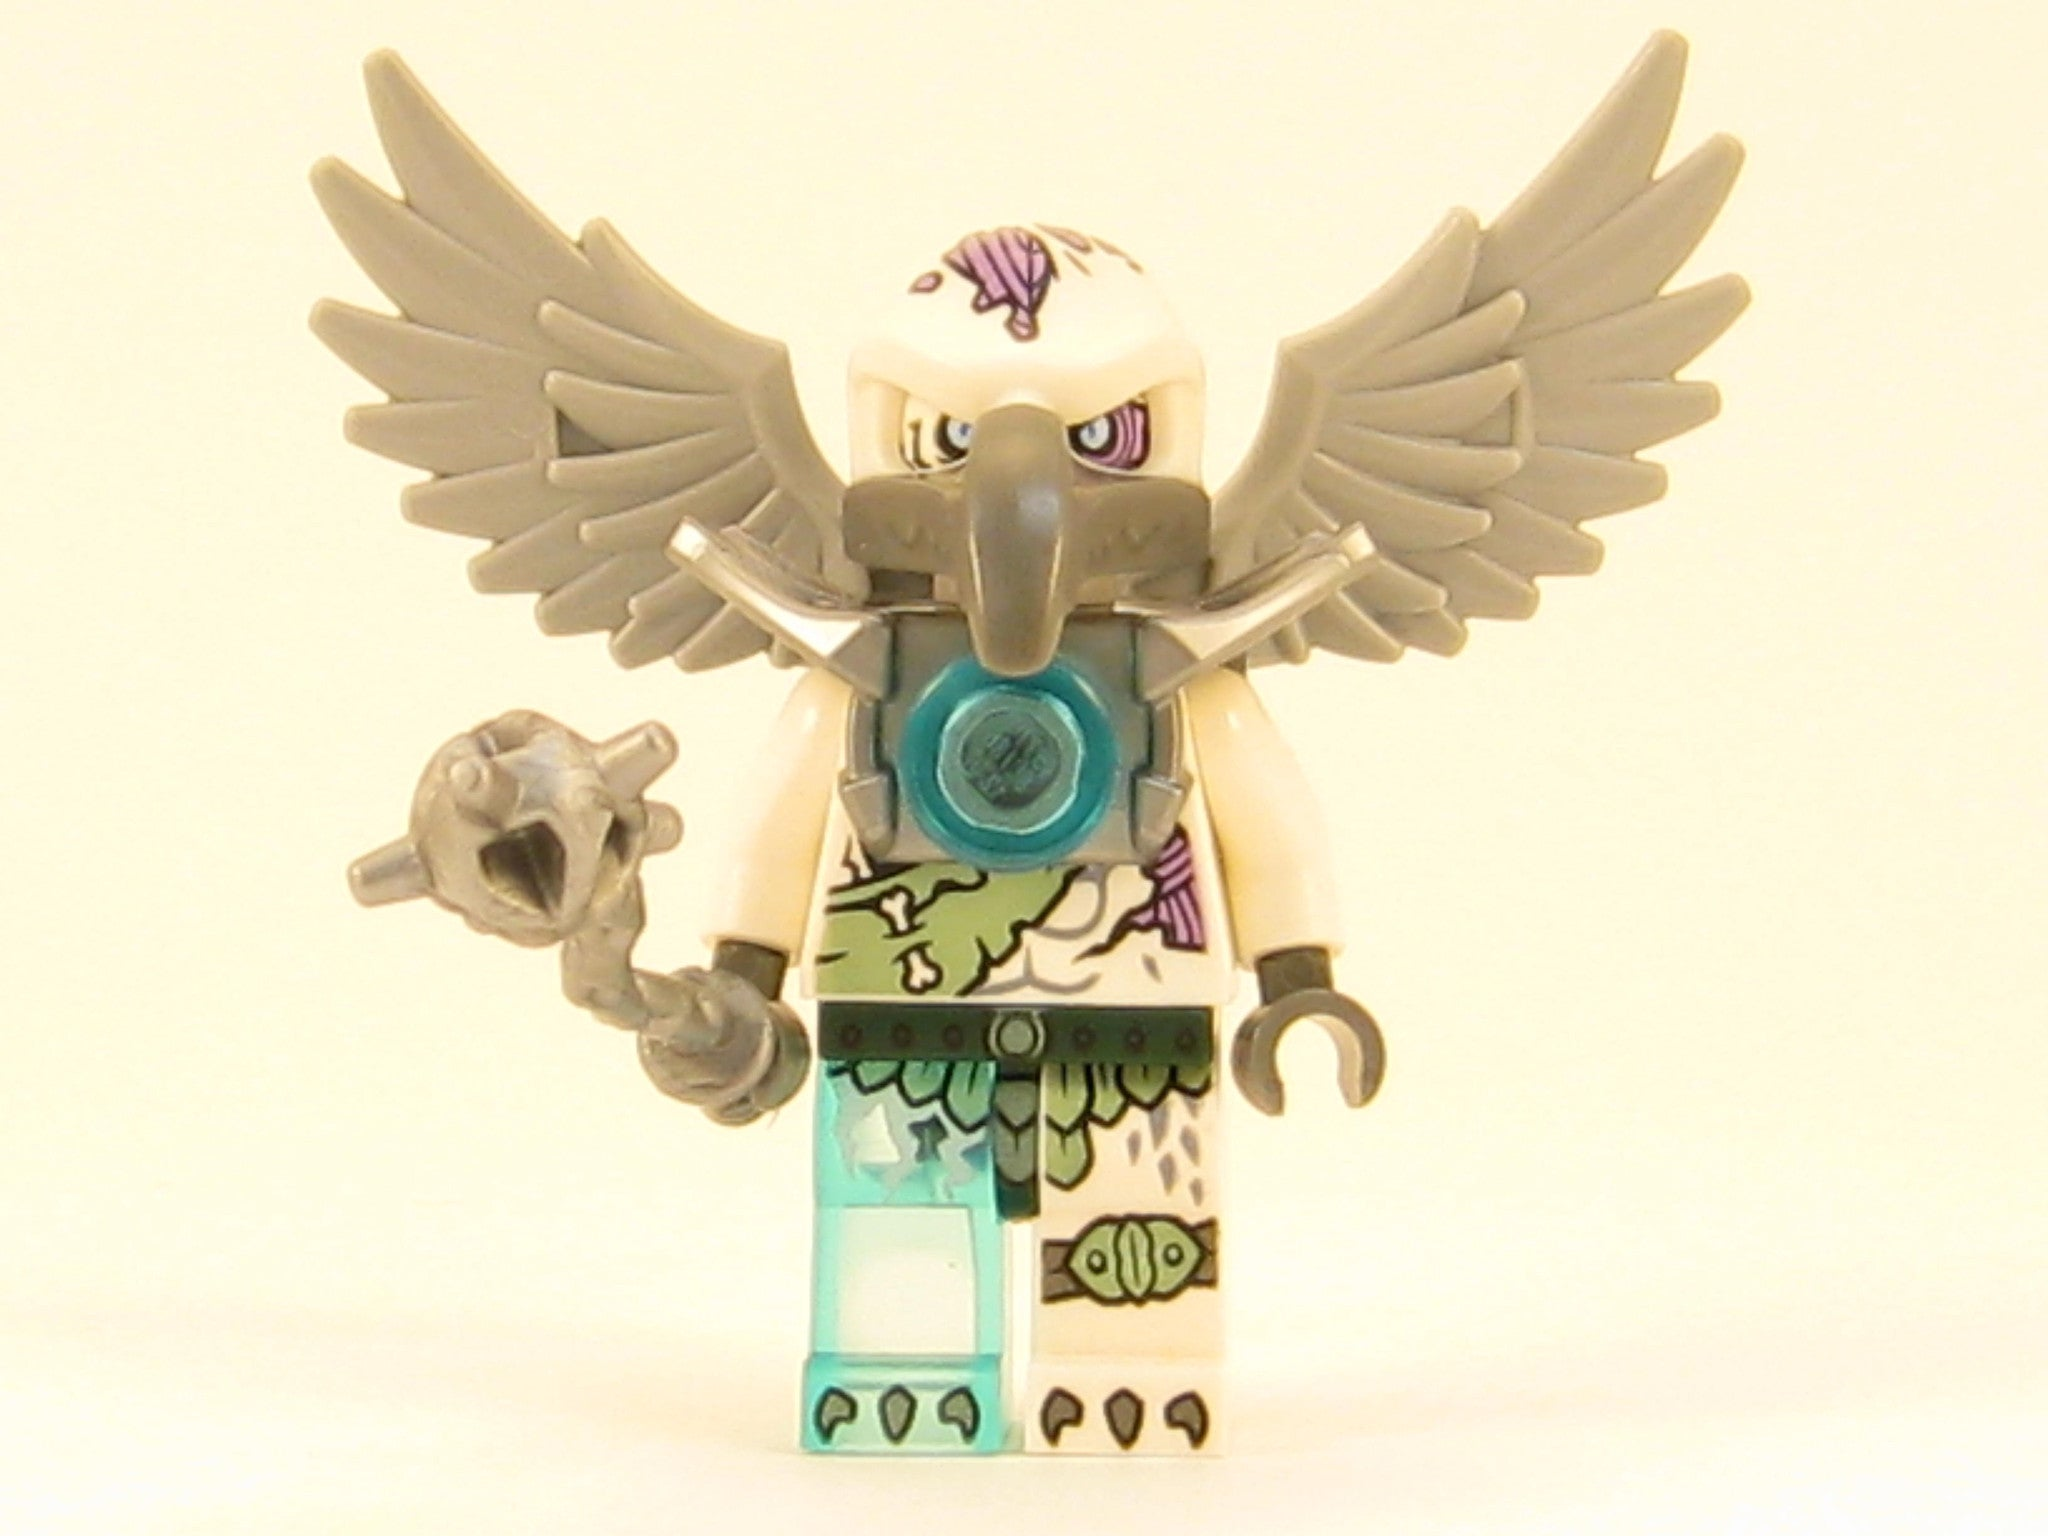 LEGO Legends of Chima Voom Voom Minifigure with Weapon Vulture Tribe